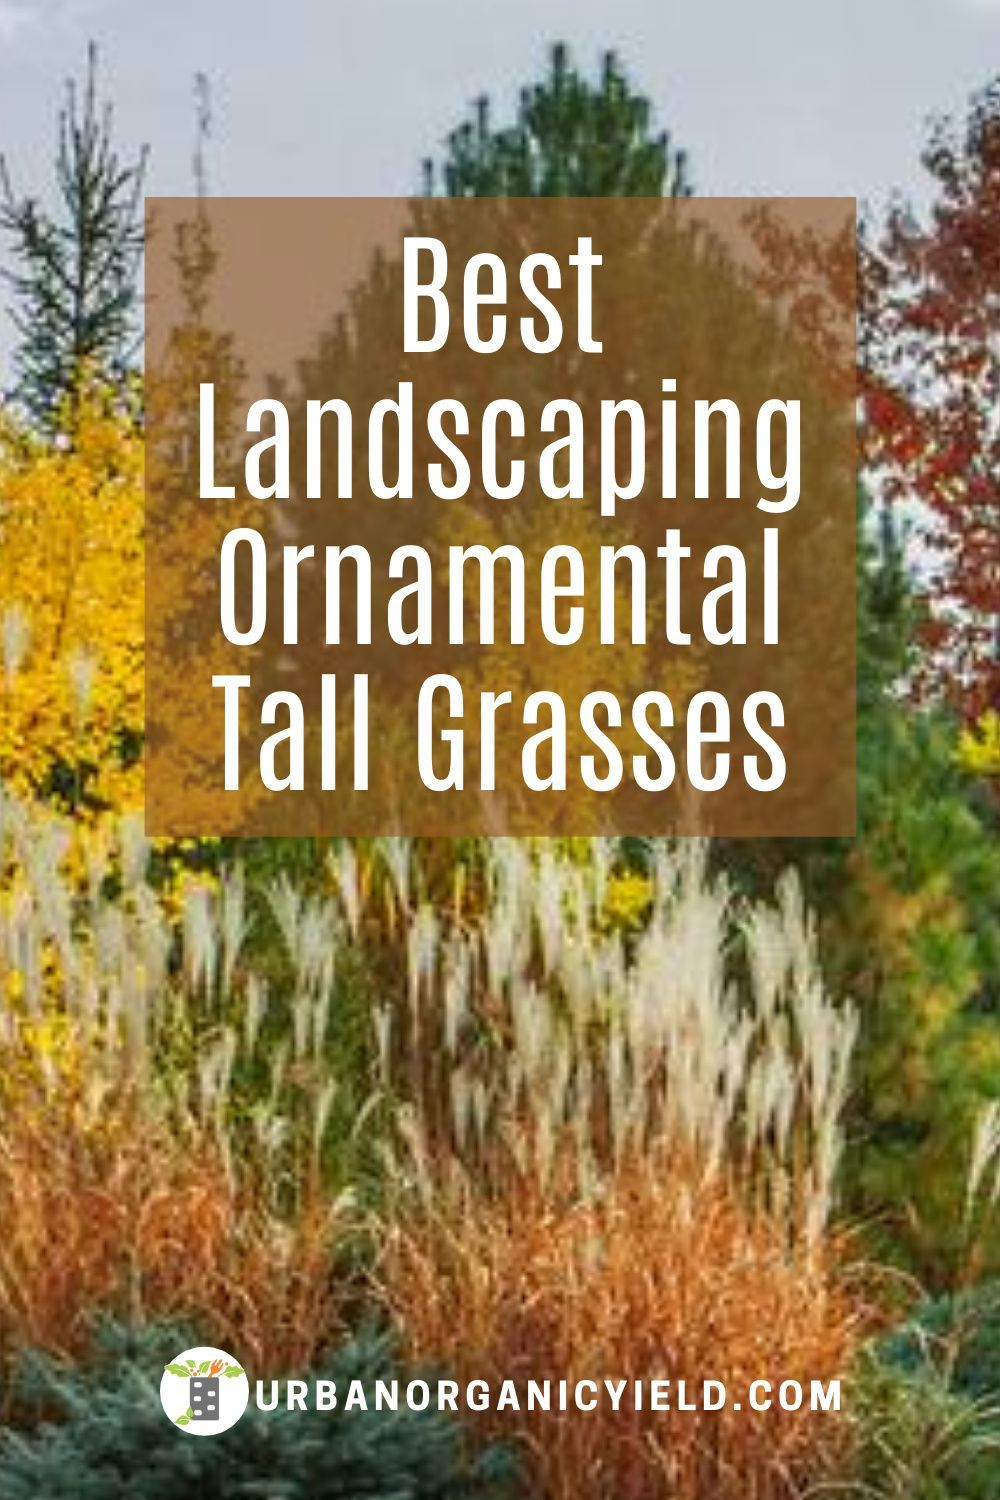 Landscaping Tall Ornamental Grass For Privacy In Your Backyards Tall Ornamental Grasses Ornamental Grasses Grasses Landscaping